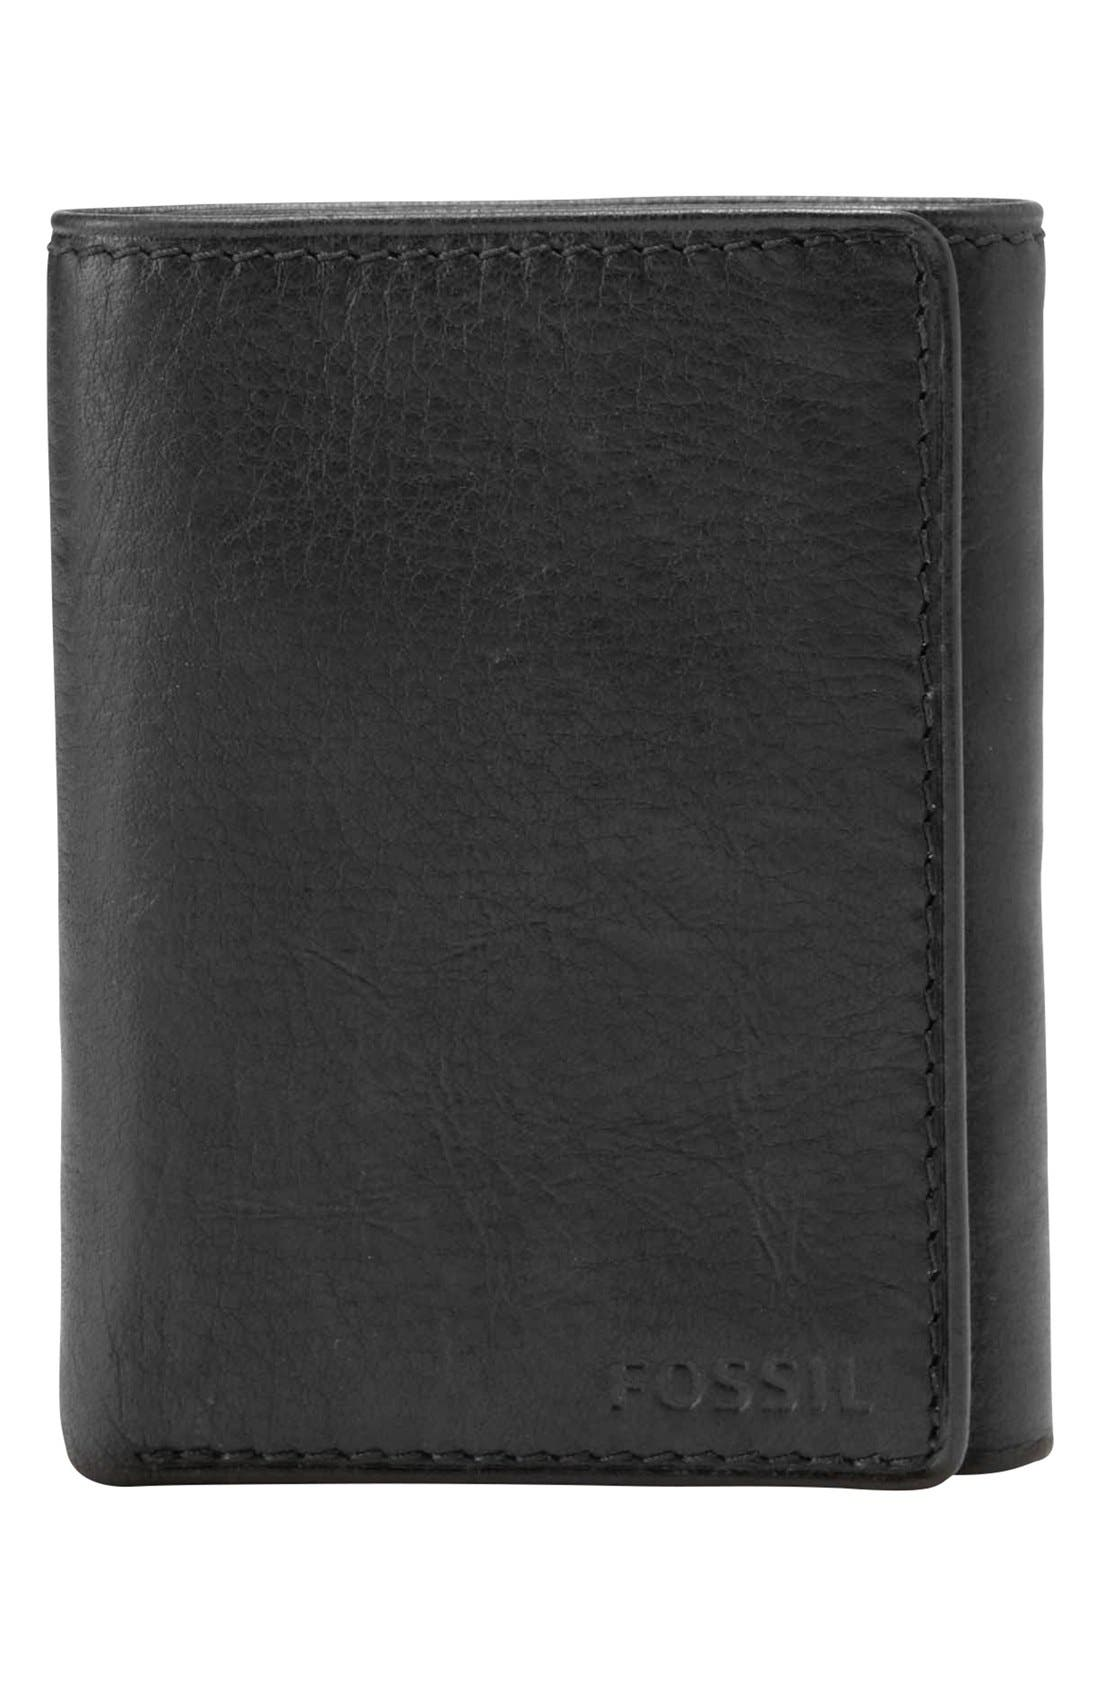 FOSSIL 'Ingram' Leather Trifold Wallet, Main, color, 001